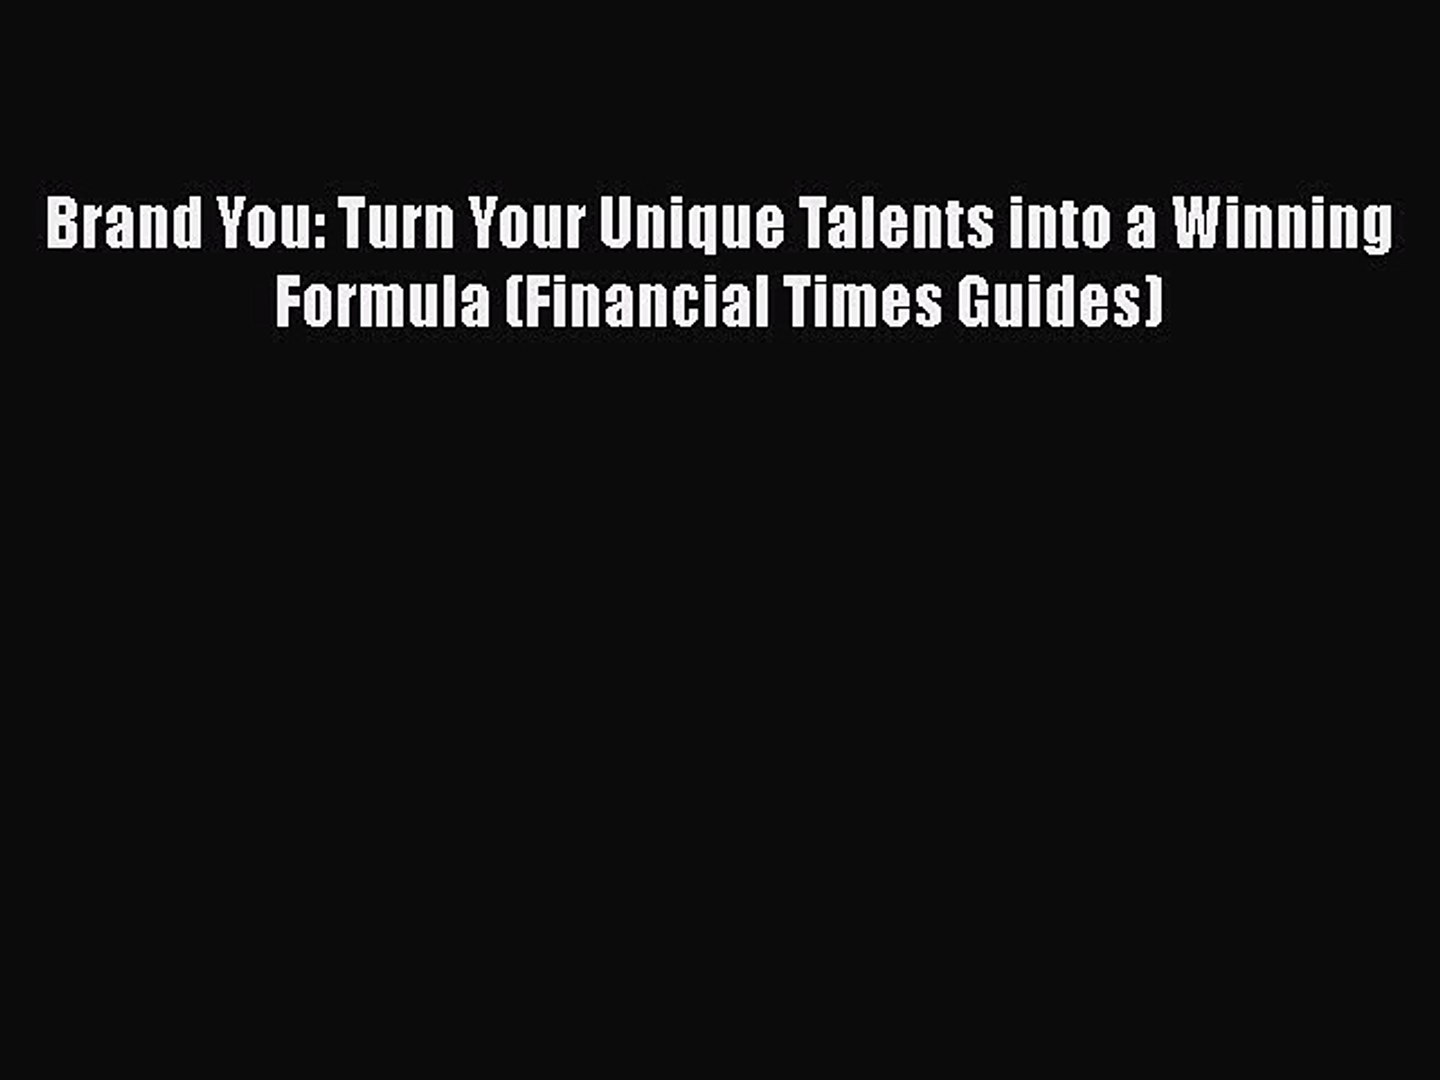 Read Brand You: Turn Your Unique Talents into a Winning Formula (Financial Times Guides) Ebook